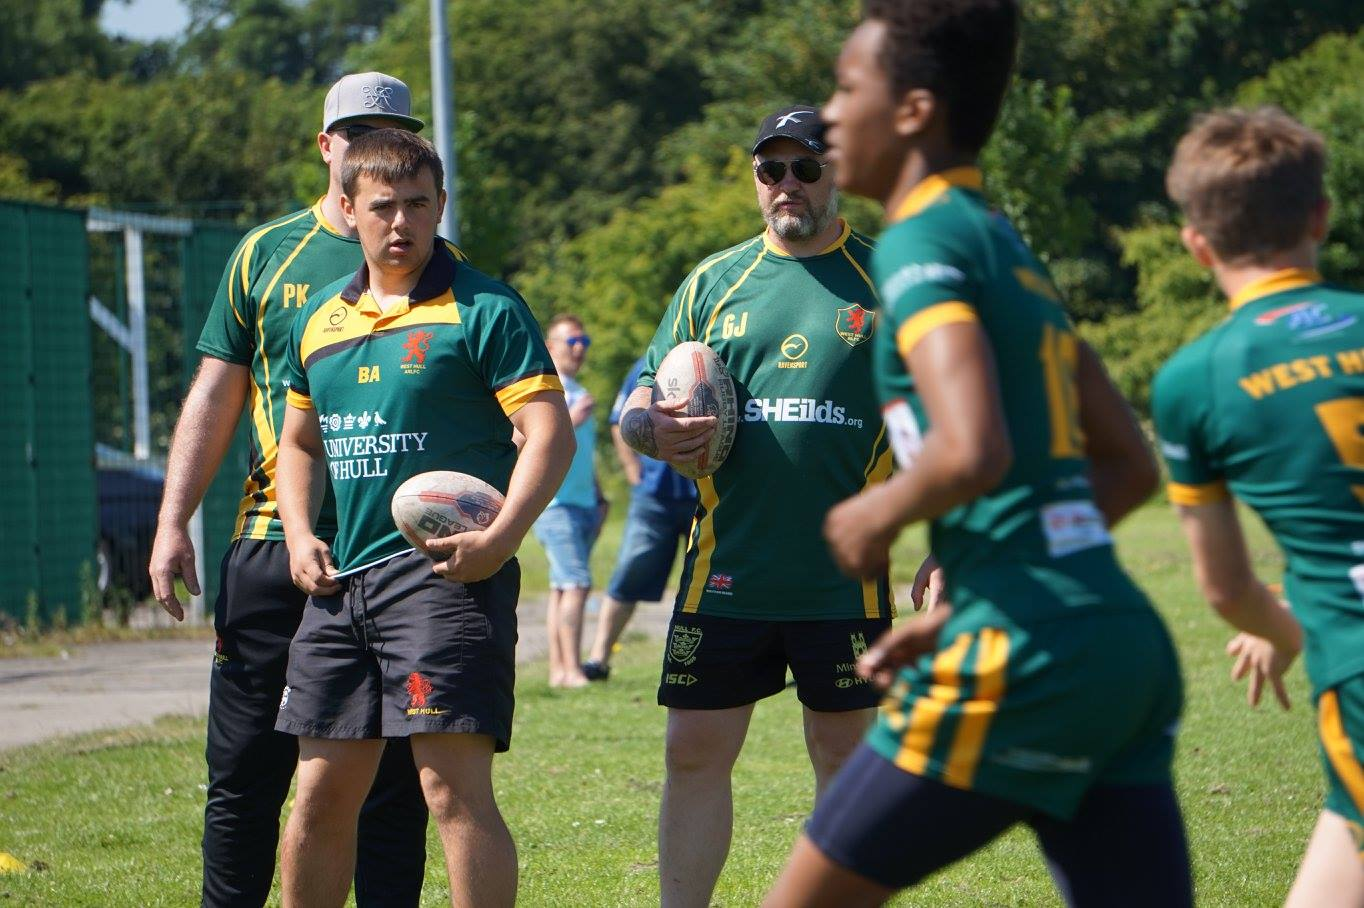 Following a fruitful amateur rugby career in, Glyn Jones has coached for 10 years.